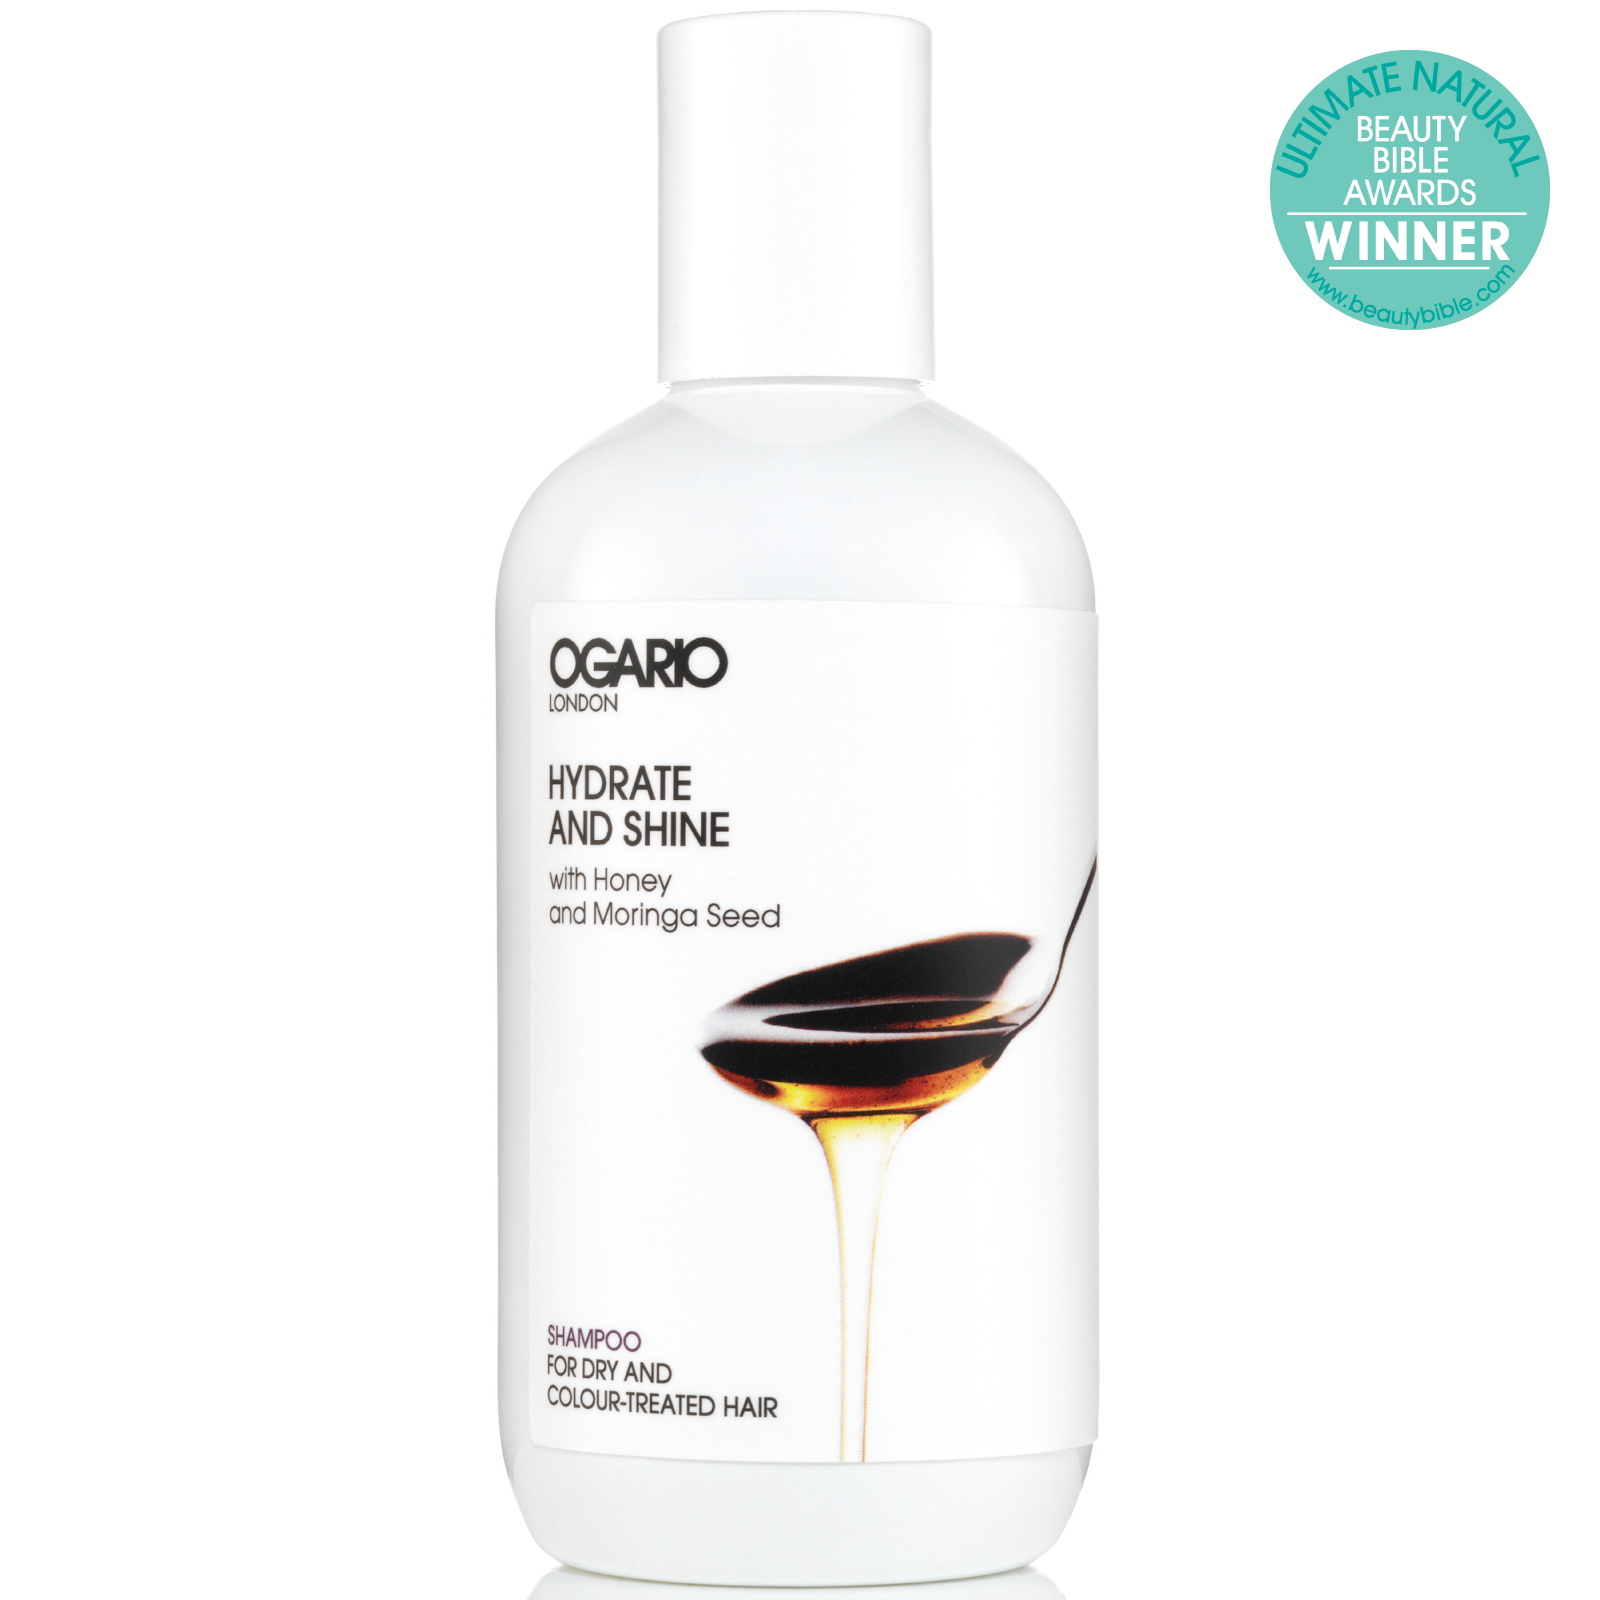 OGARIO Hydrate and Shine Shampoo; Best for adding moisture to curly hair